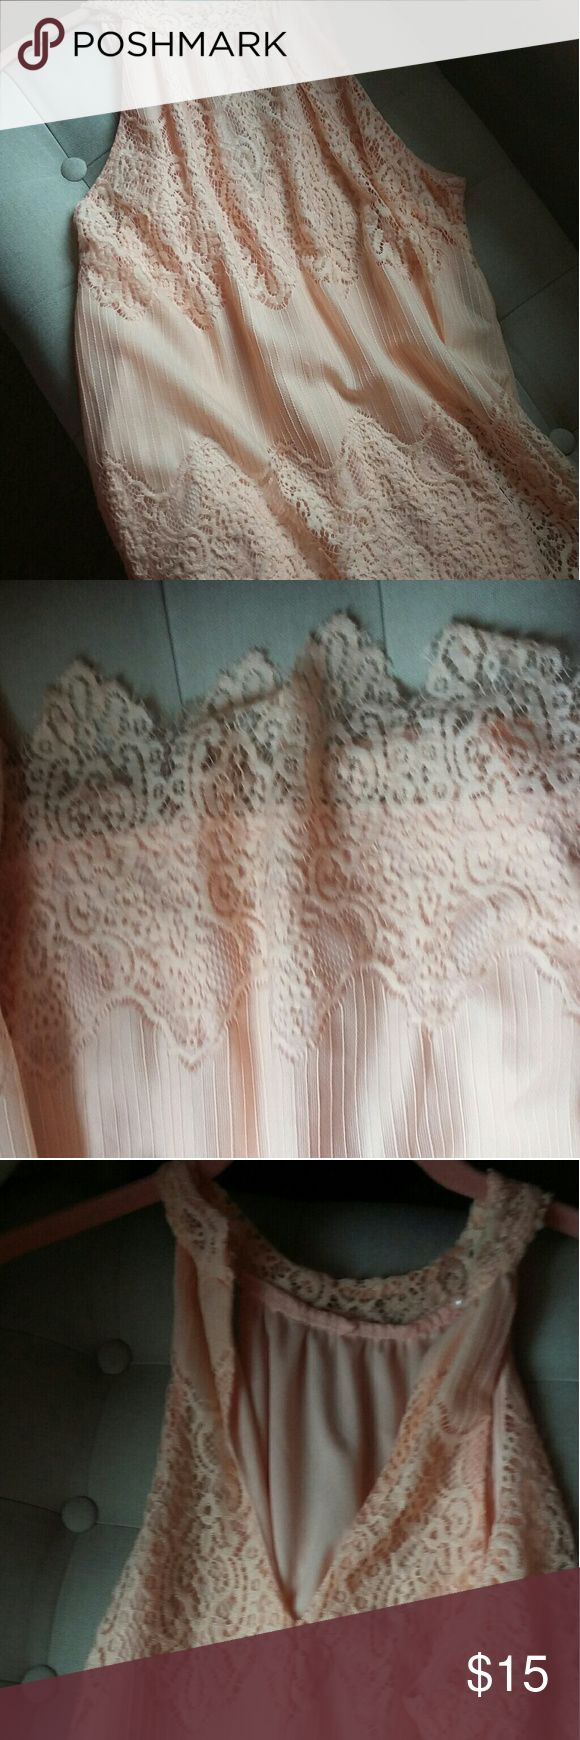 Peach lace dress Very soft Charlotte russe peachy creamsicile colored dress lace through out above the knee length, key hole back, very flattering only worn once!! Charlotte Russe Dresses Mini